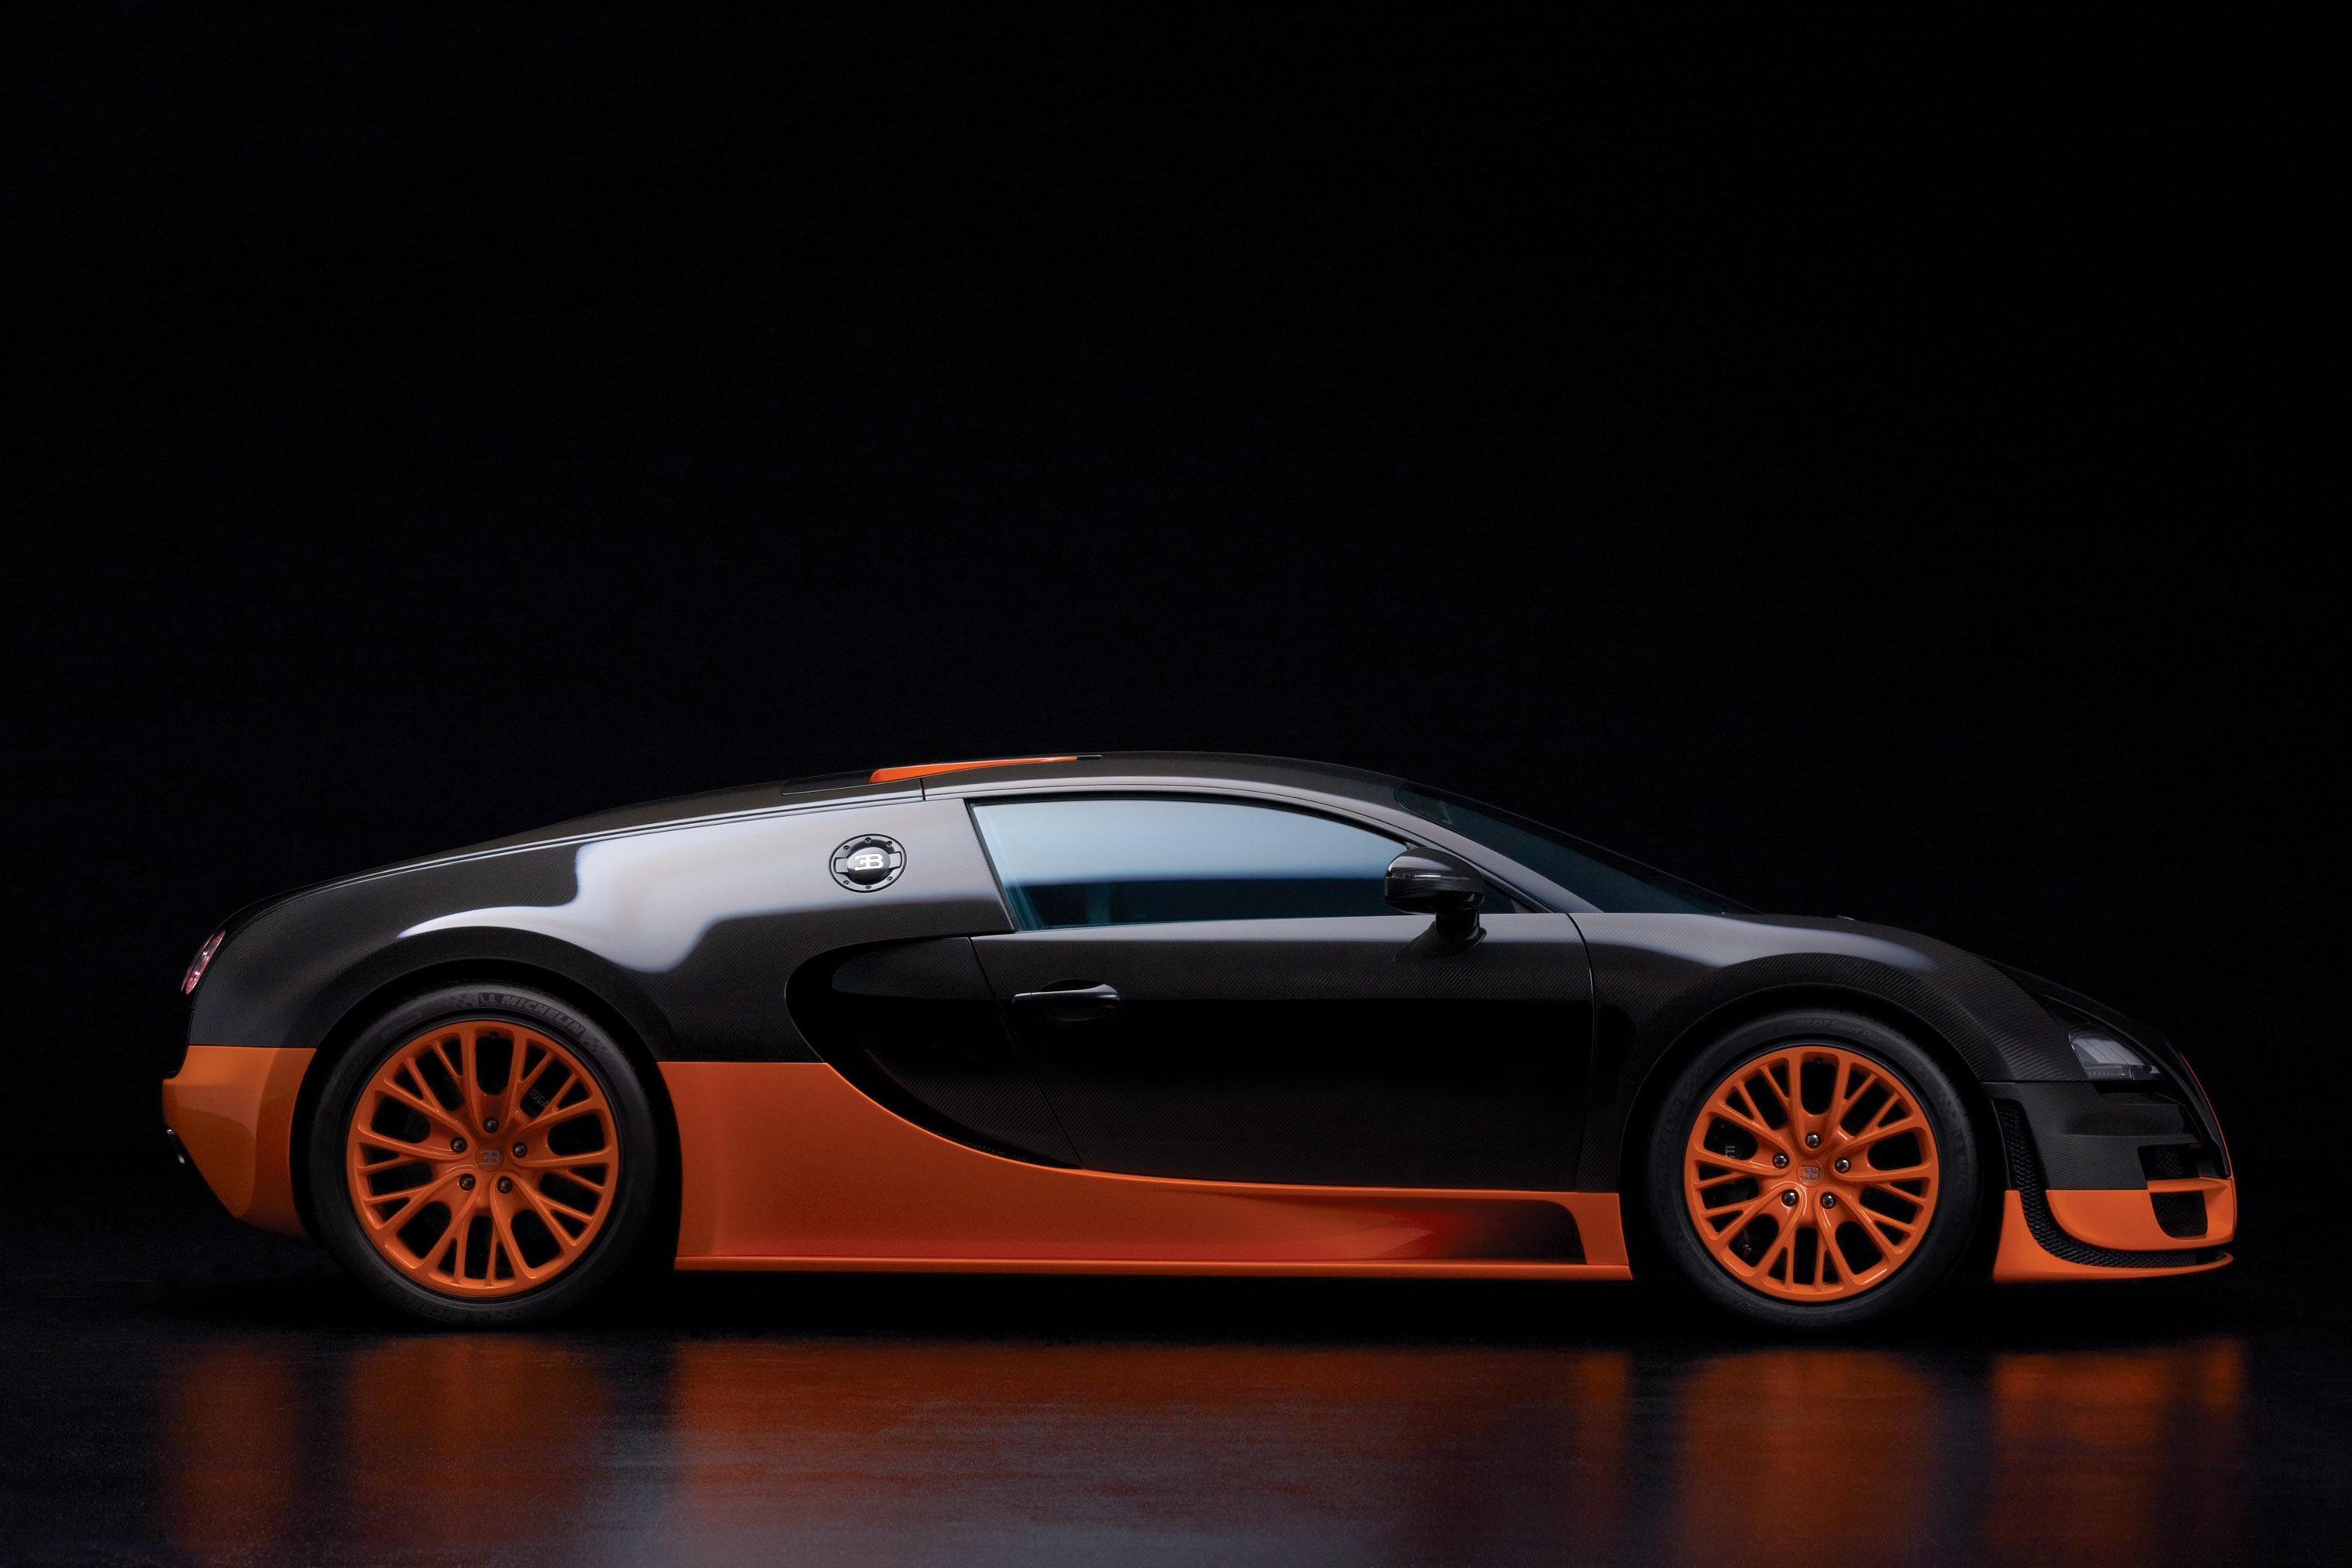 Bugatti Veyron Super Sport Widescreen for desktop